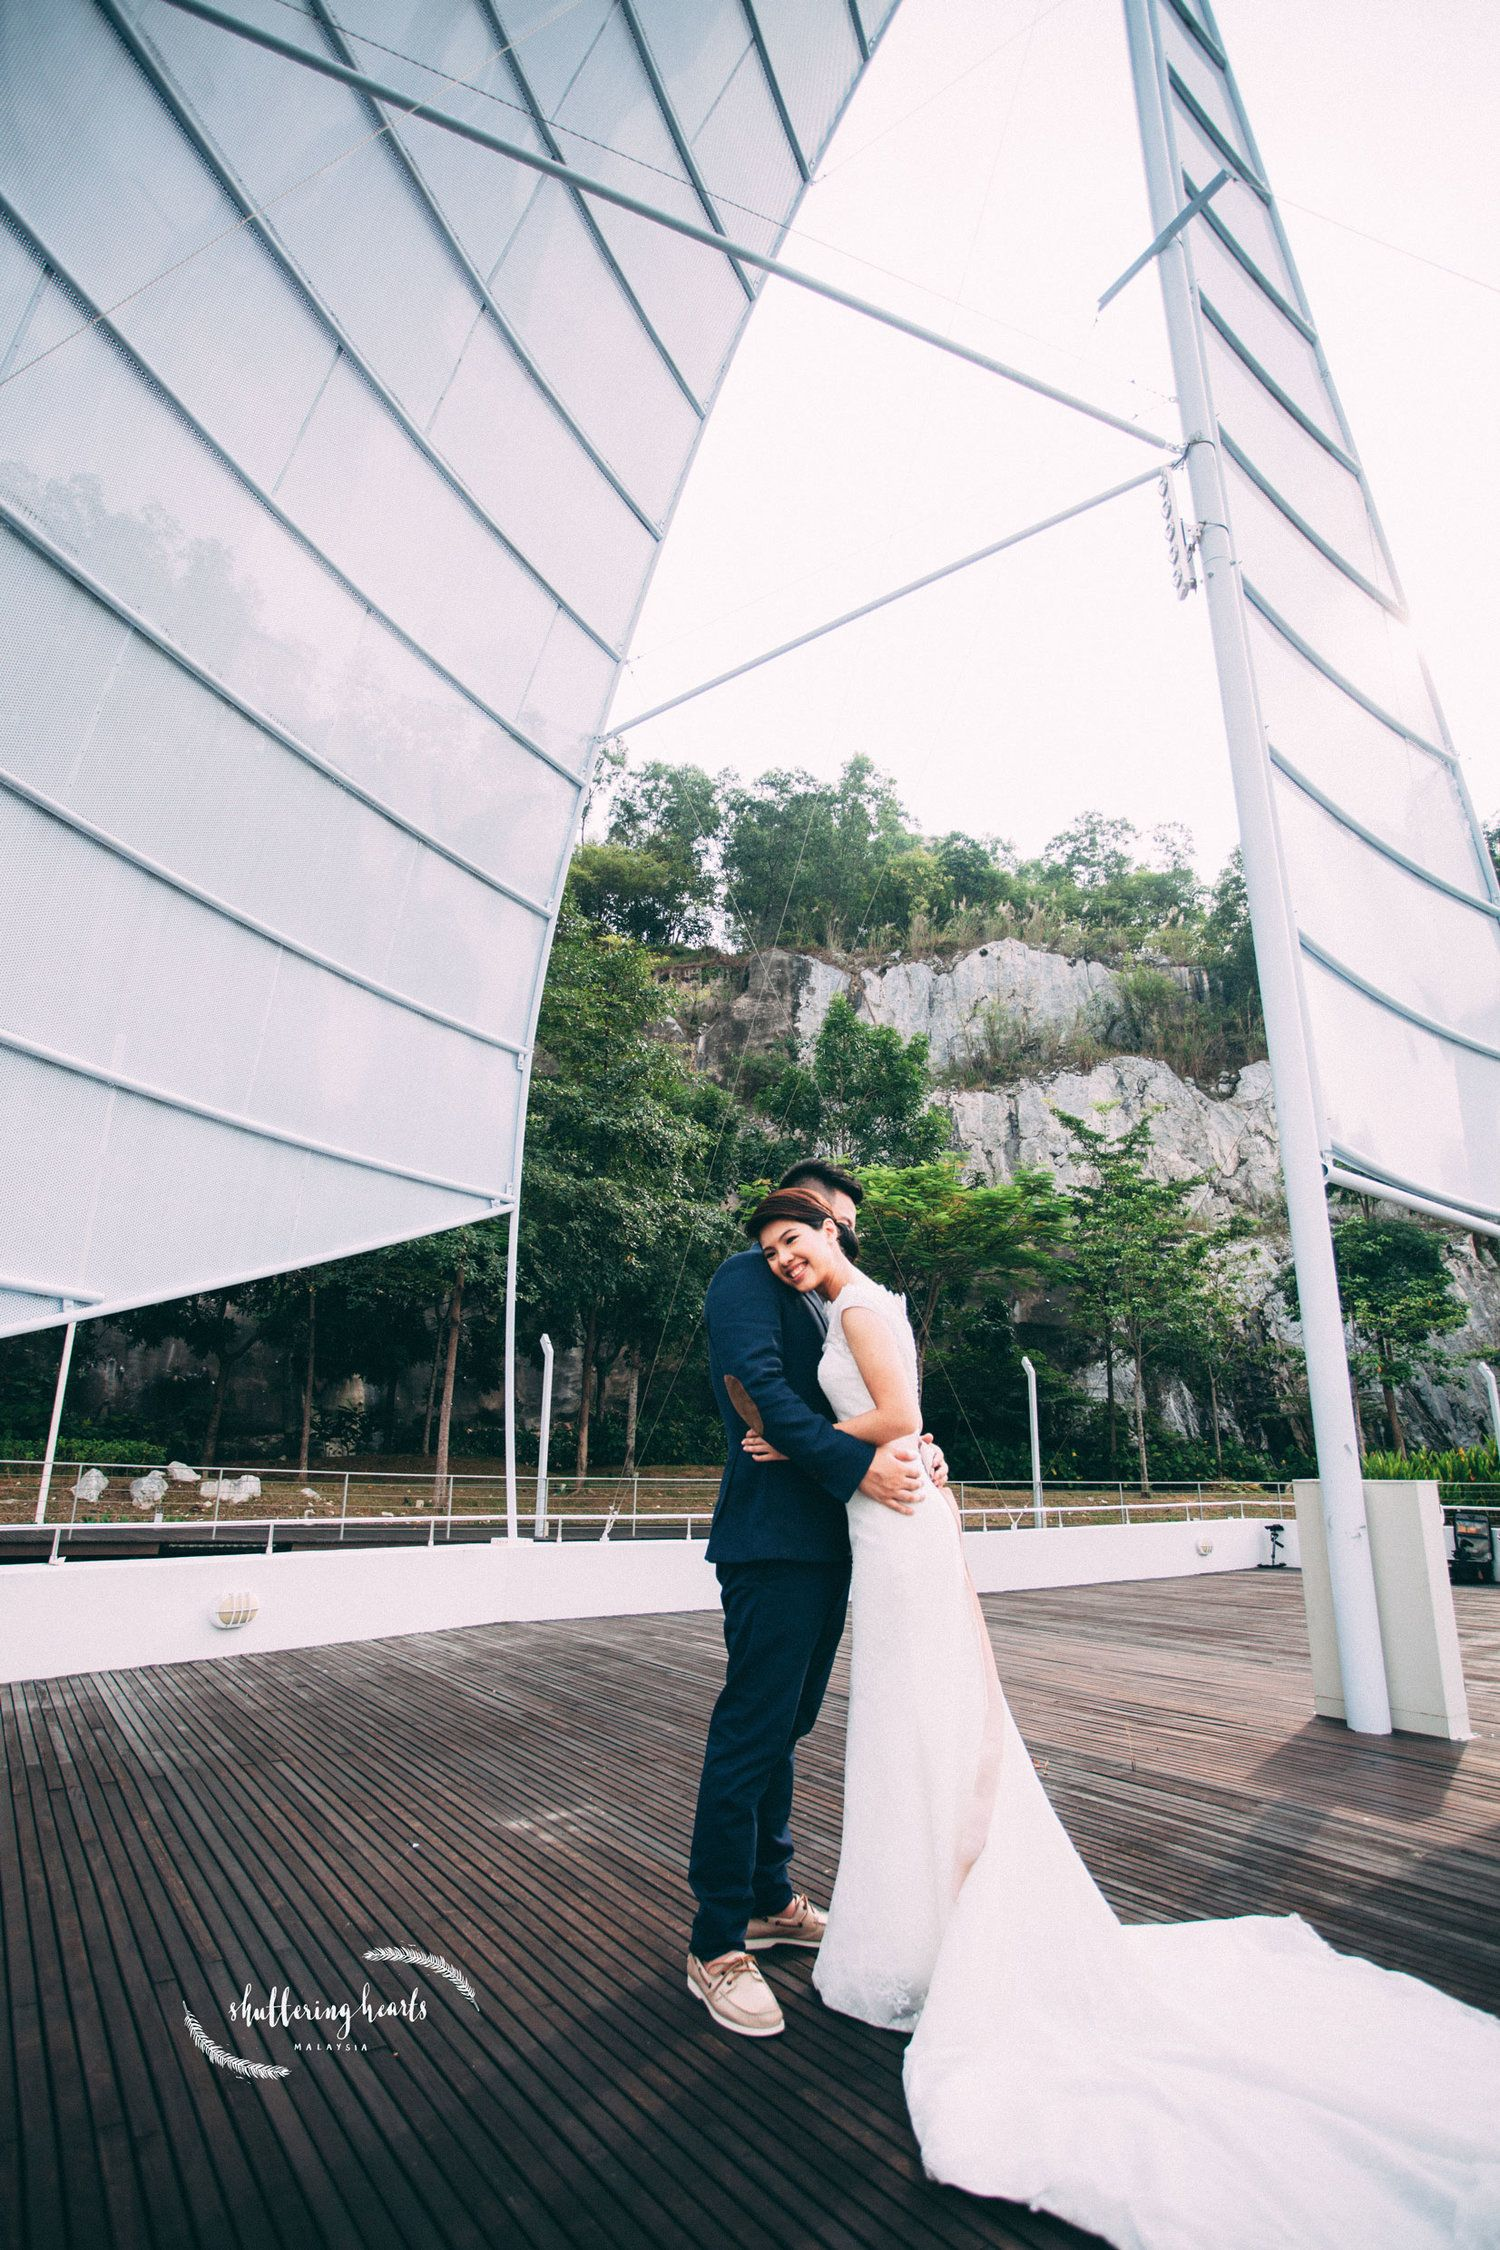 Magnificient angle with gorgeous venue is perfect for